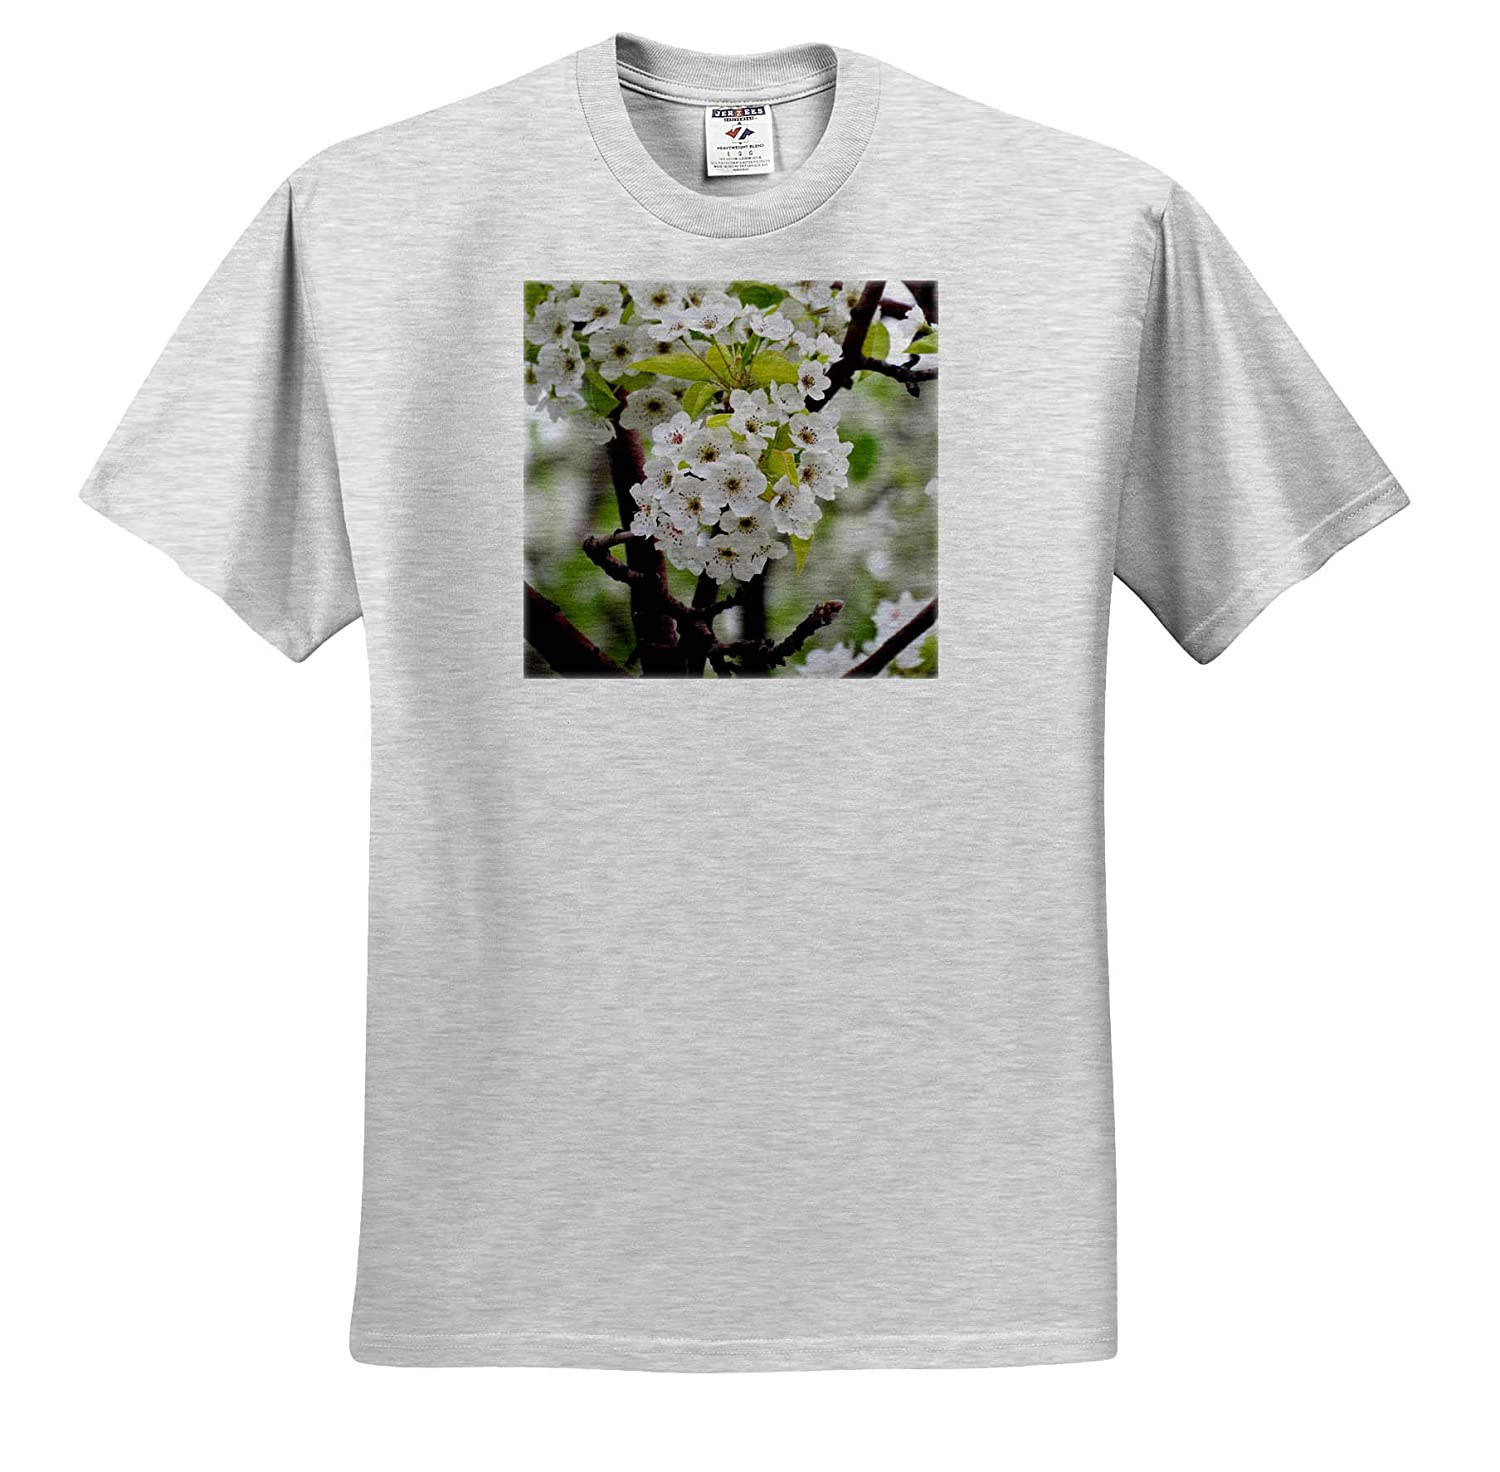 3dRose Jos Fauxtographee- Tree ts/_319580 A Blossoming Tree with White Flowers on Green Adult T-Shirt XL